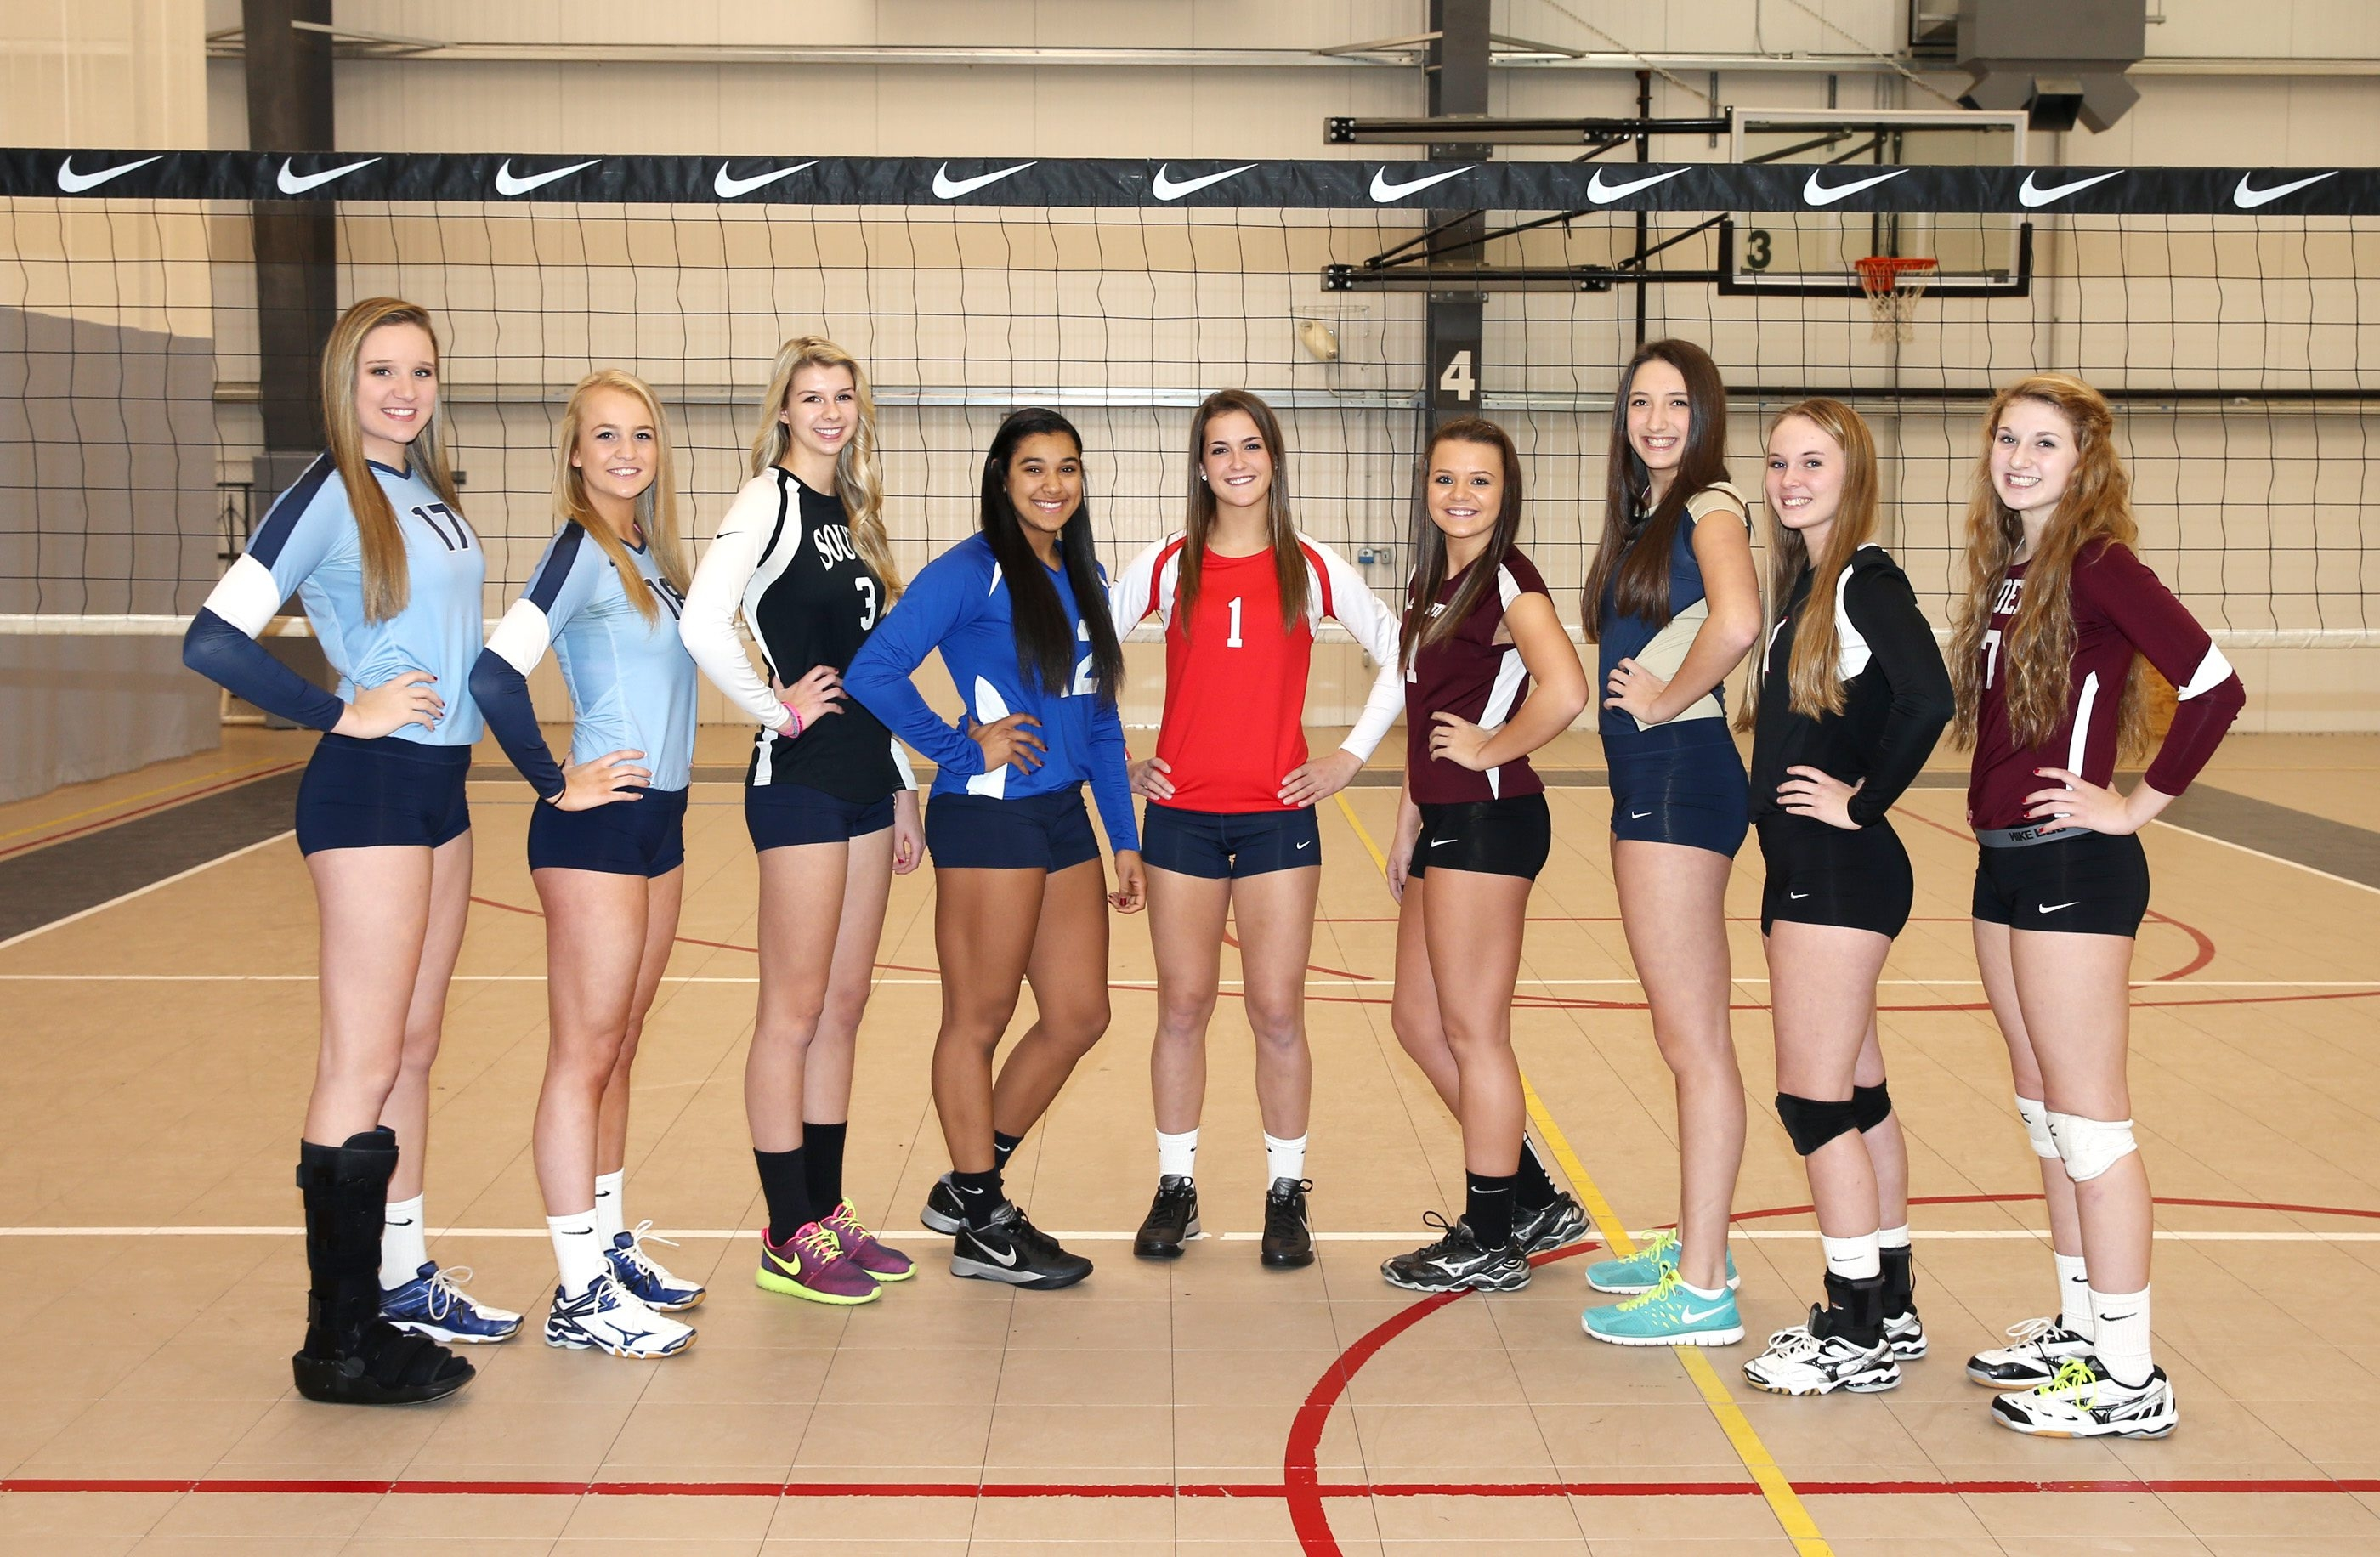 The 2014 All-WNY first team, from left, Leah Meyer (St. Mary's), Ashley Drzymala (St. Mary's), Madison Clark (Williamsville South), McKyla Brooks (Frontier), Mckenna Maycock (Randolph), Shaina Griffin (Portville), Rachel Reusch (Sweet Home), Meghan Neelon (Clarence) and Sam Burgio (Eden). Five of the nine were on state championship teams.